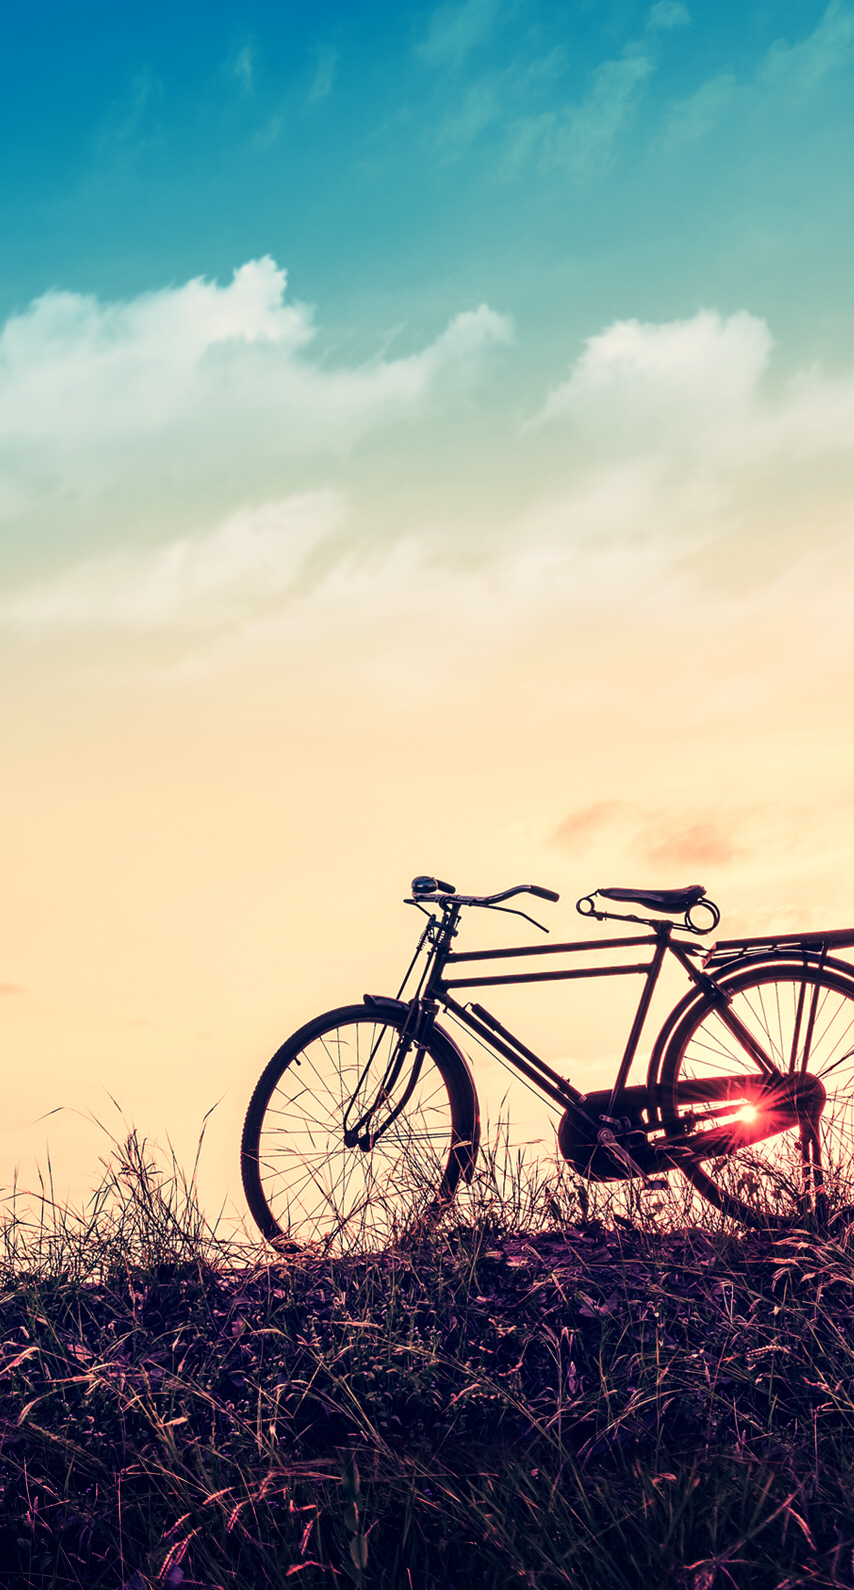 Inspiration image by Anastasia Royal enfield wallpapers